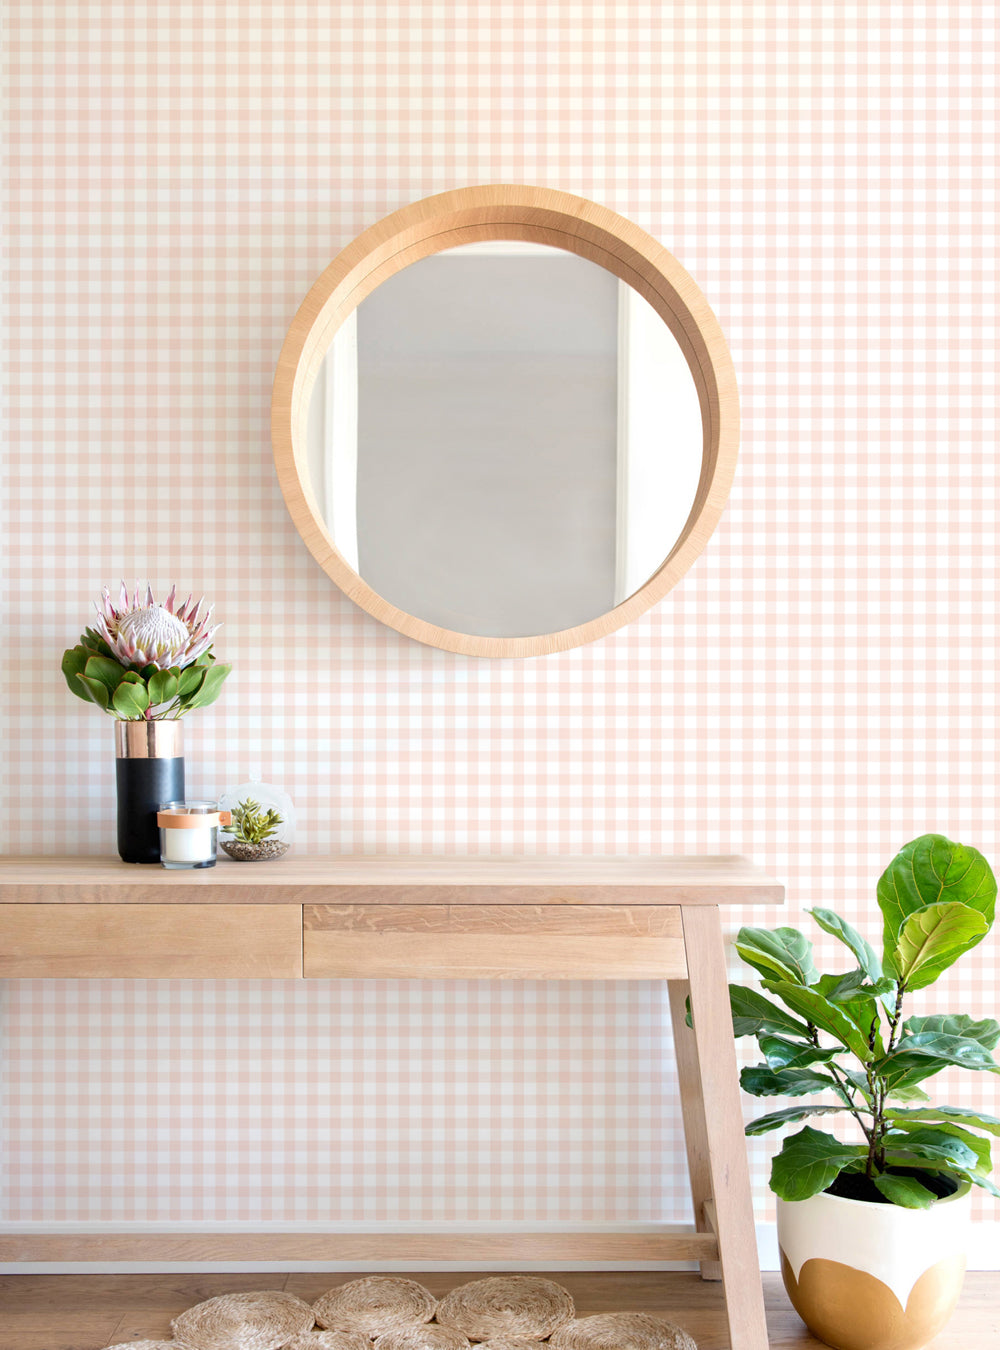 Gingham Check Pattern Wallpaper - Peel and Stick